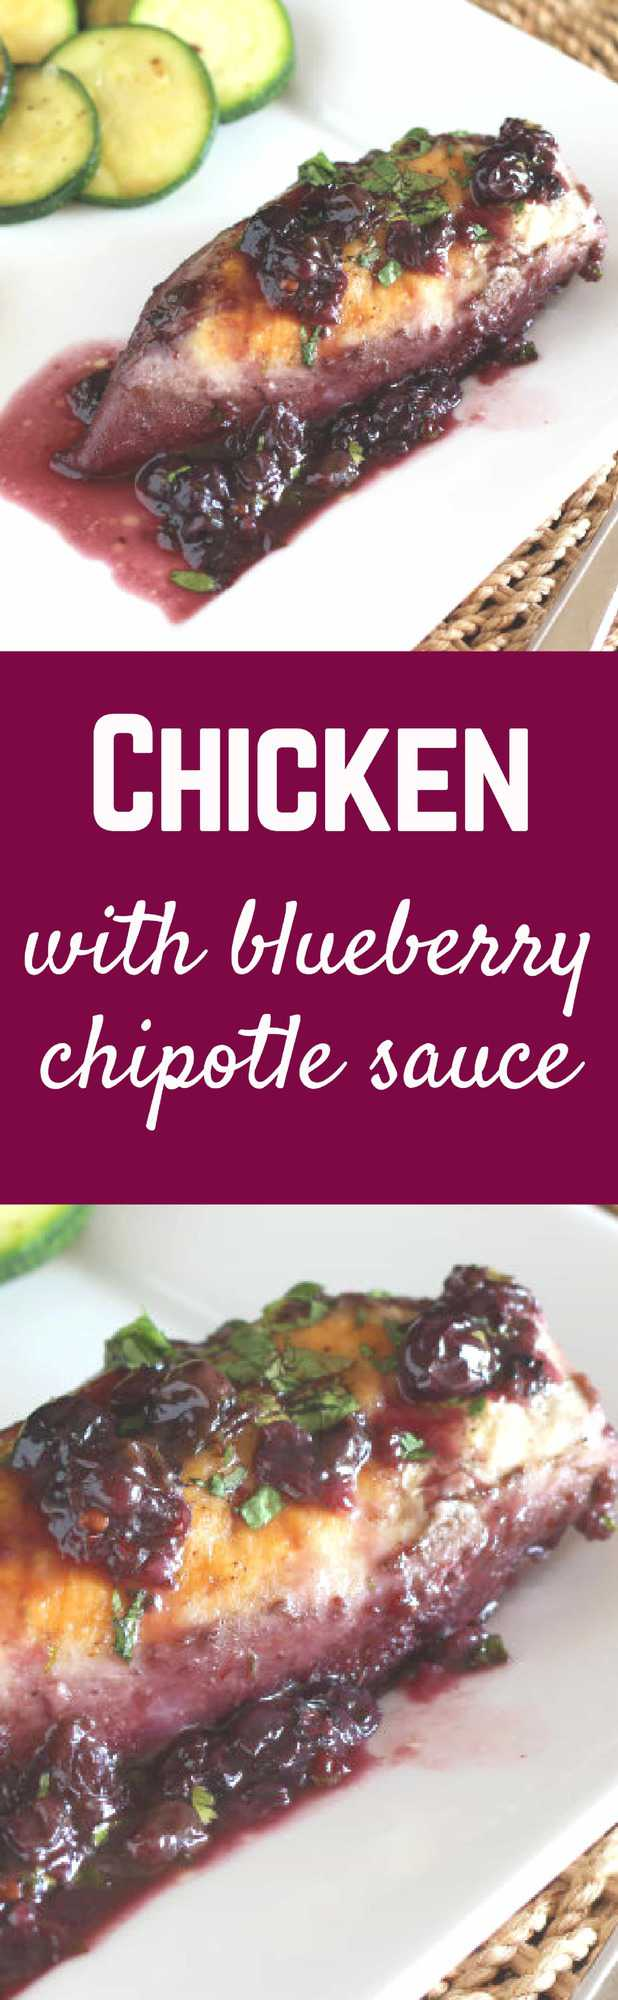 This chicken has a unique blueberry chipotle sauce that is the perfect blend of spicy and sweet. Get the recipe on RachelCooks.com!